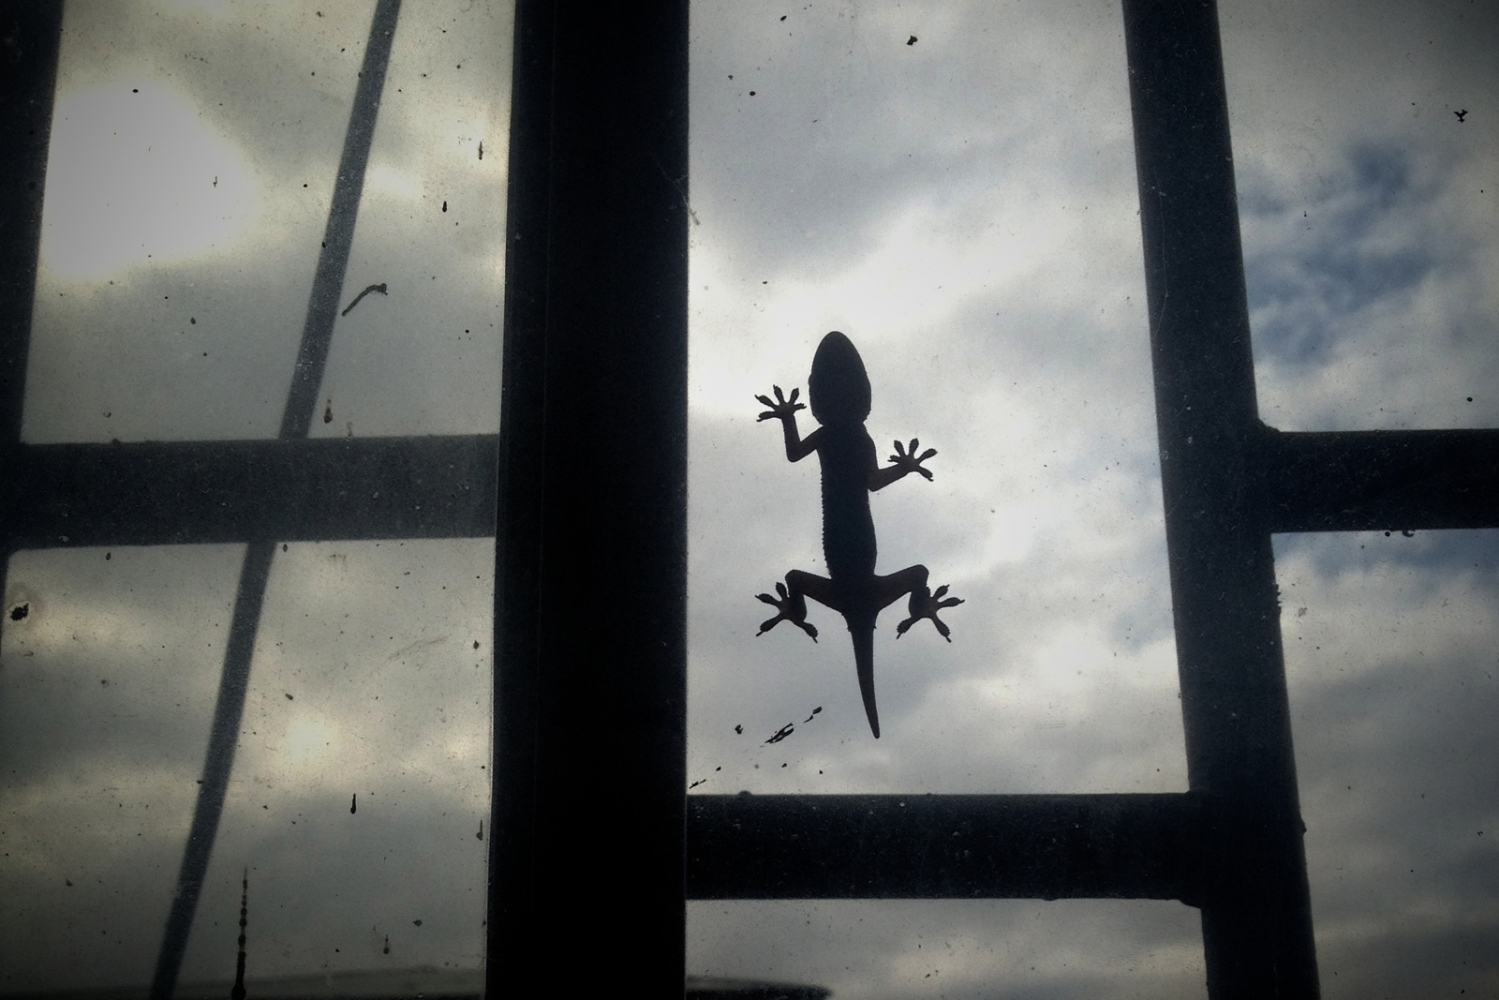 Monrovia, Liberia. July 2013. Gecko on the window. Insect, pests, and small reptiles often infest human dwellings during the rainy season.